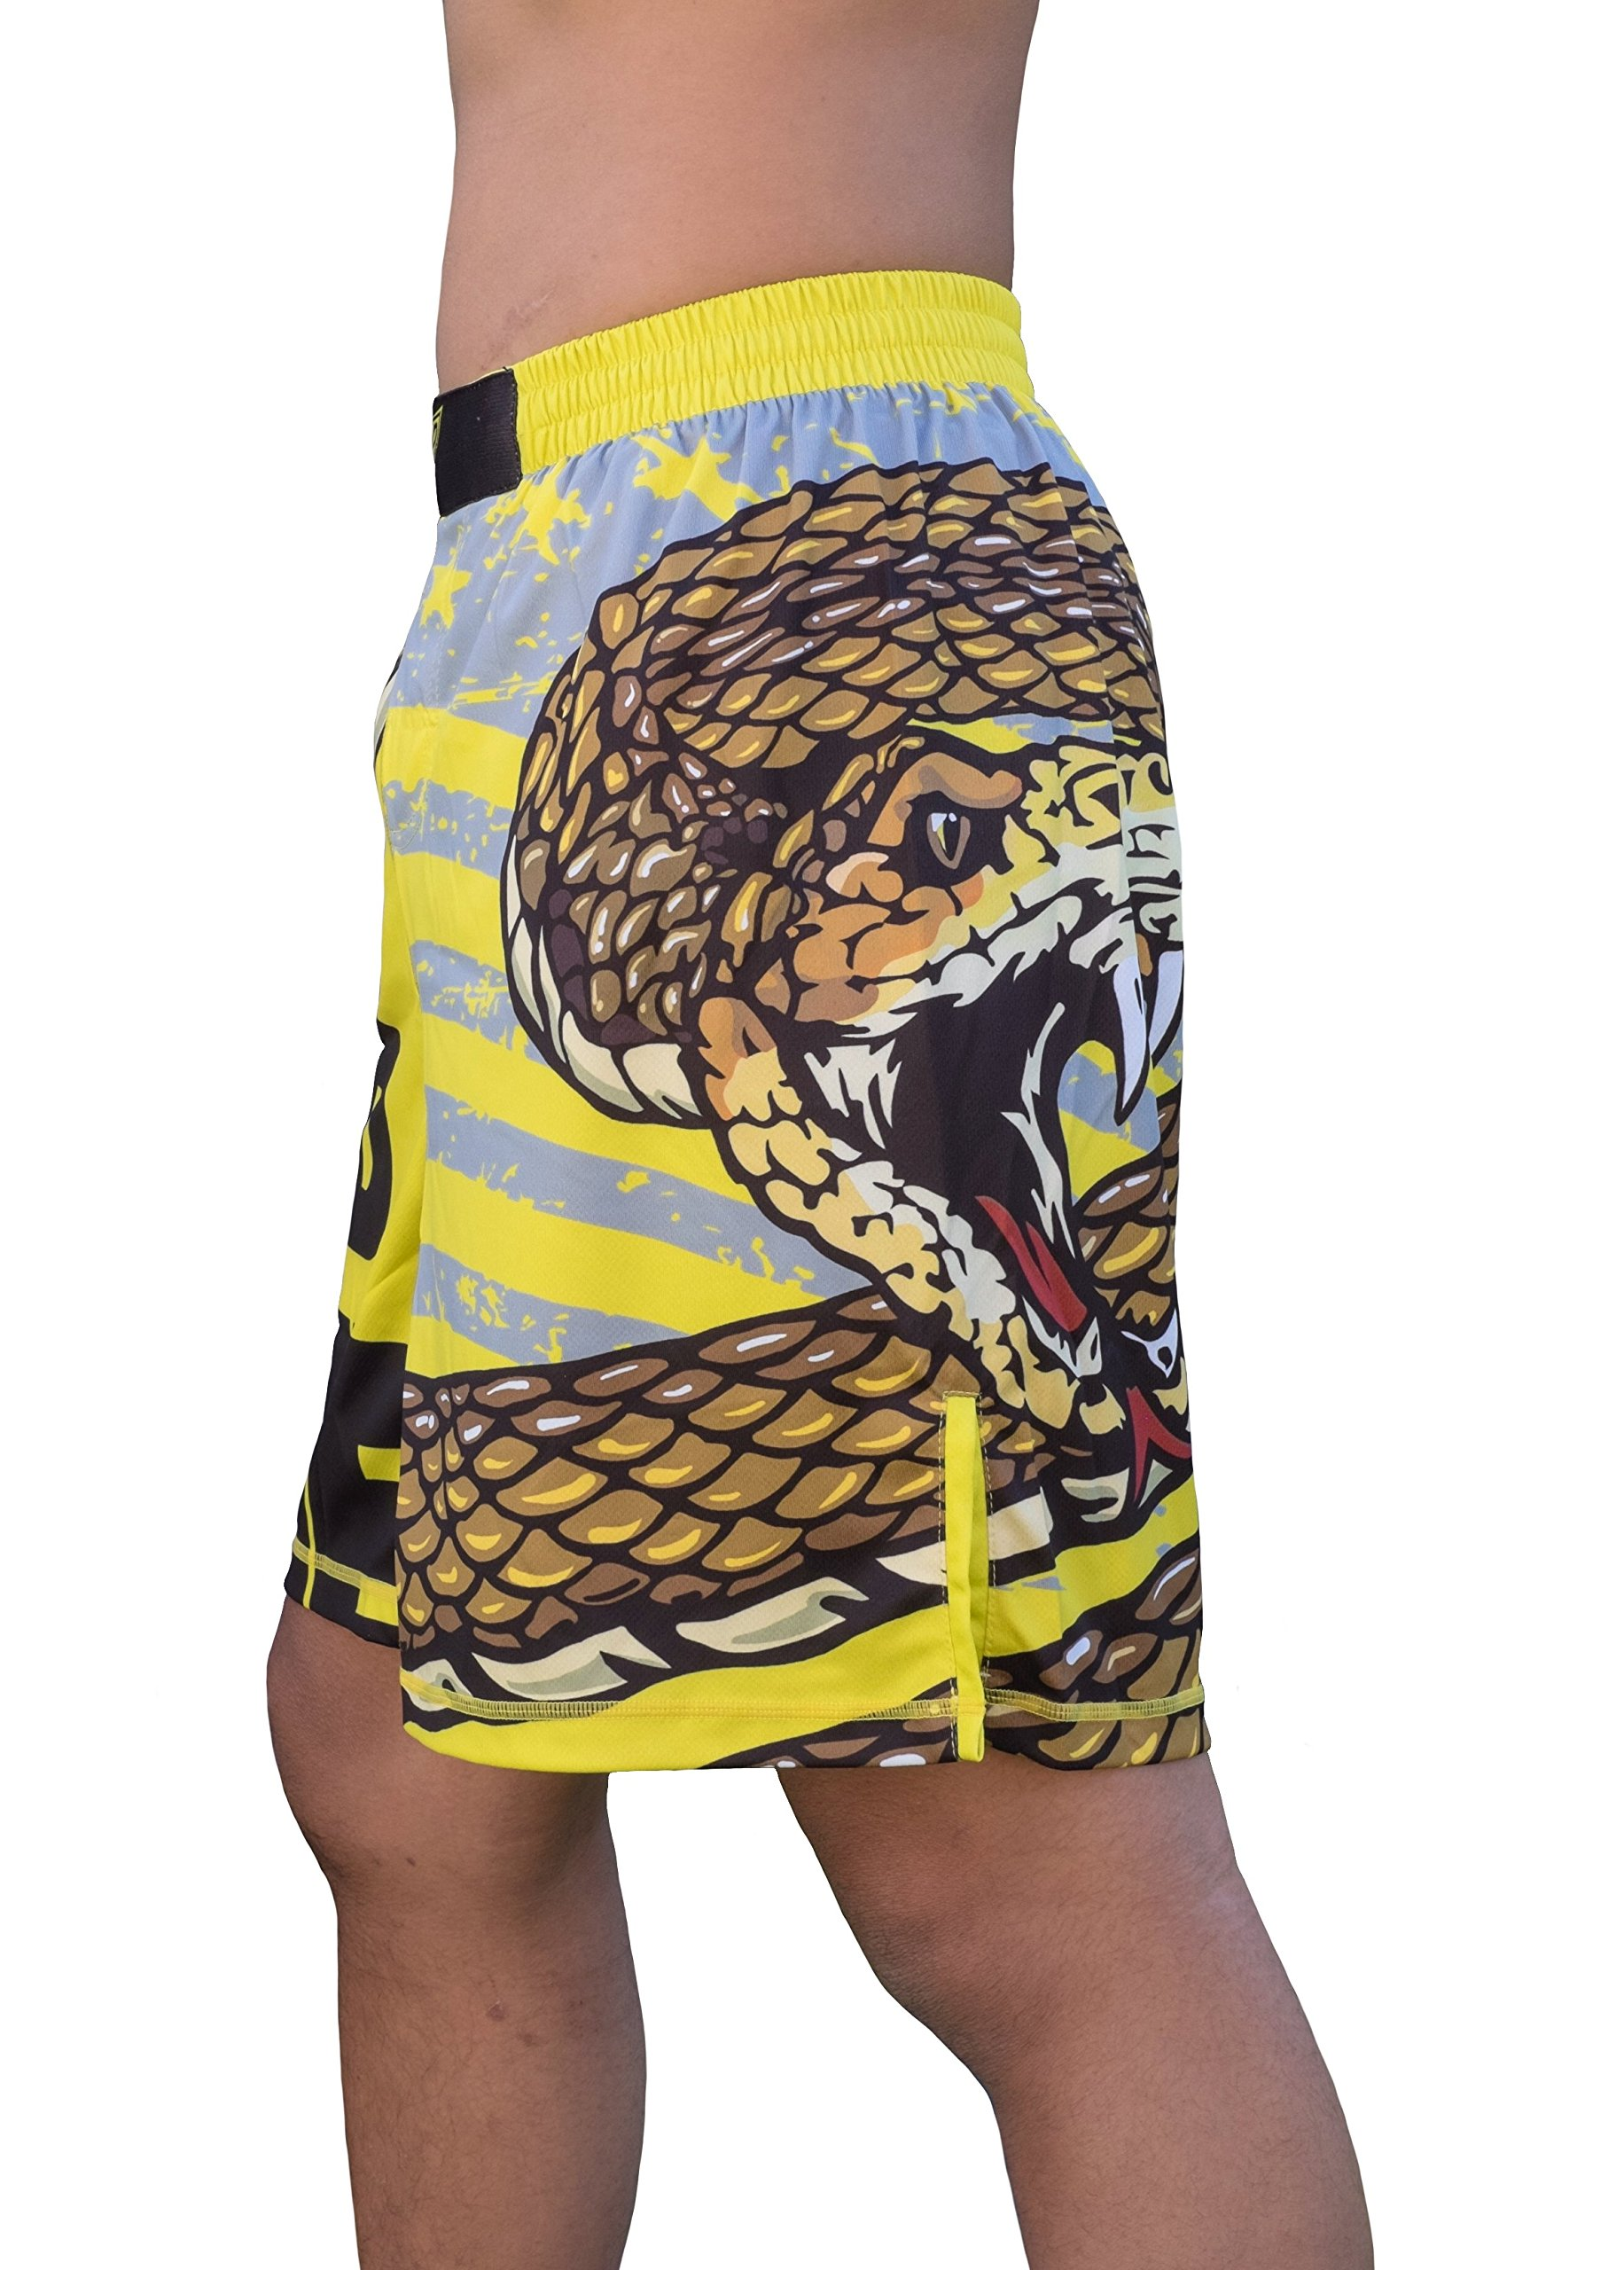 TRI-TITANS Don't Tread on Me! MMA Wrestling Jiu-Jitsu training Fight Shorts - Youths & Mens(Youth M: waist 22''-24'') by TRI-TITANS